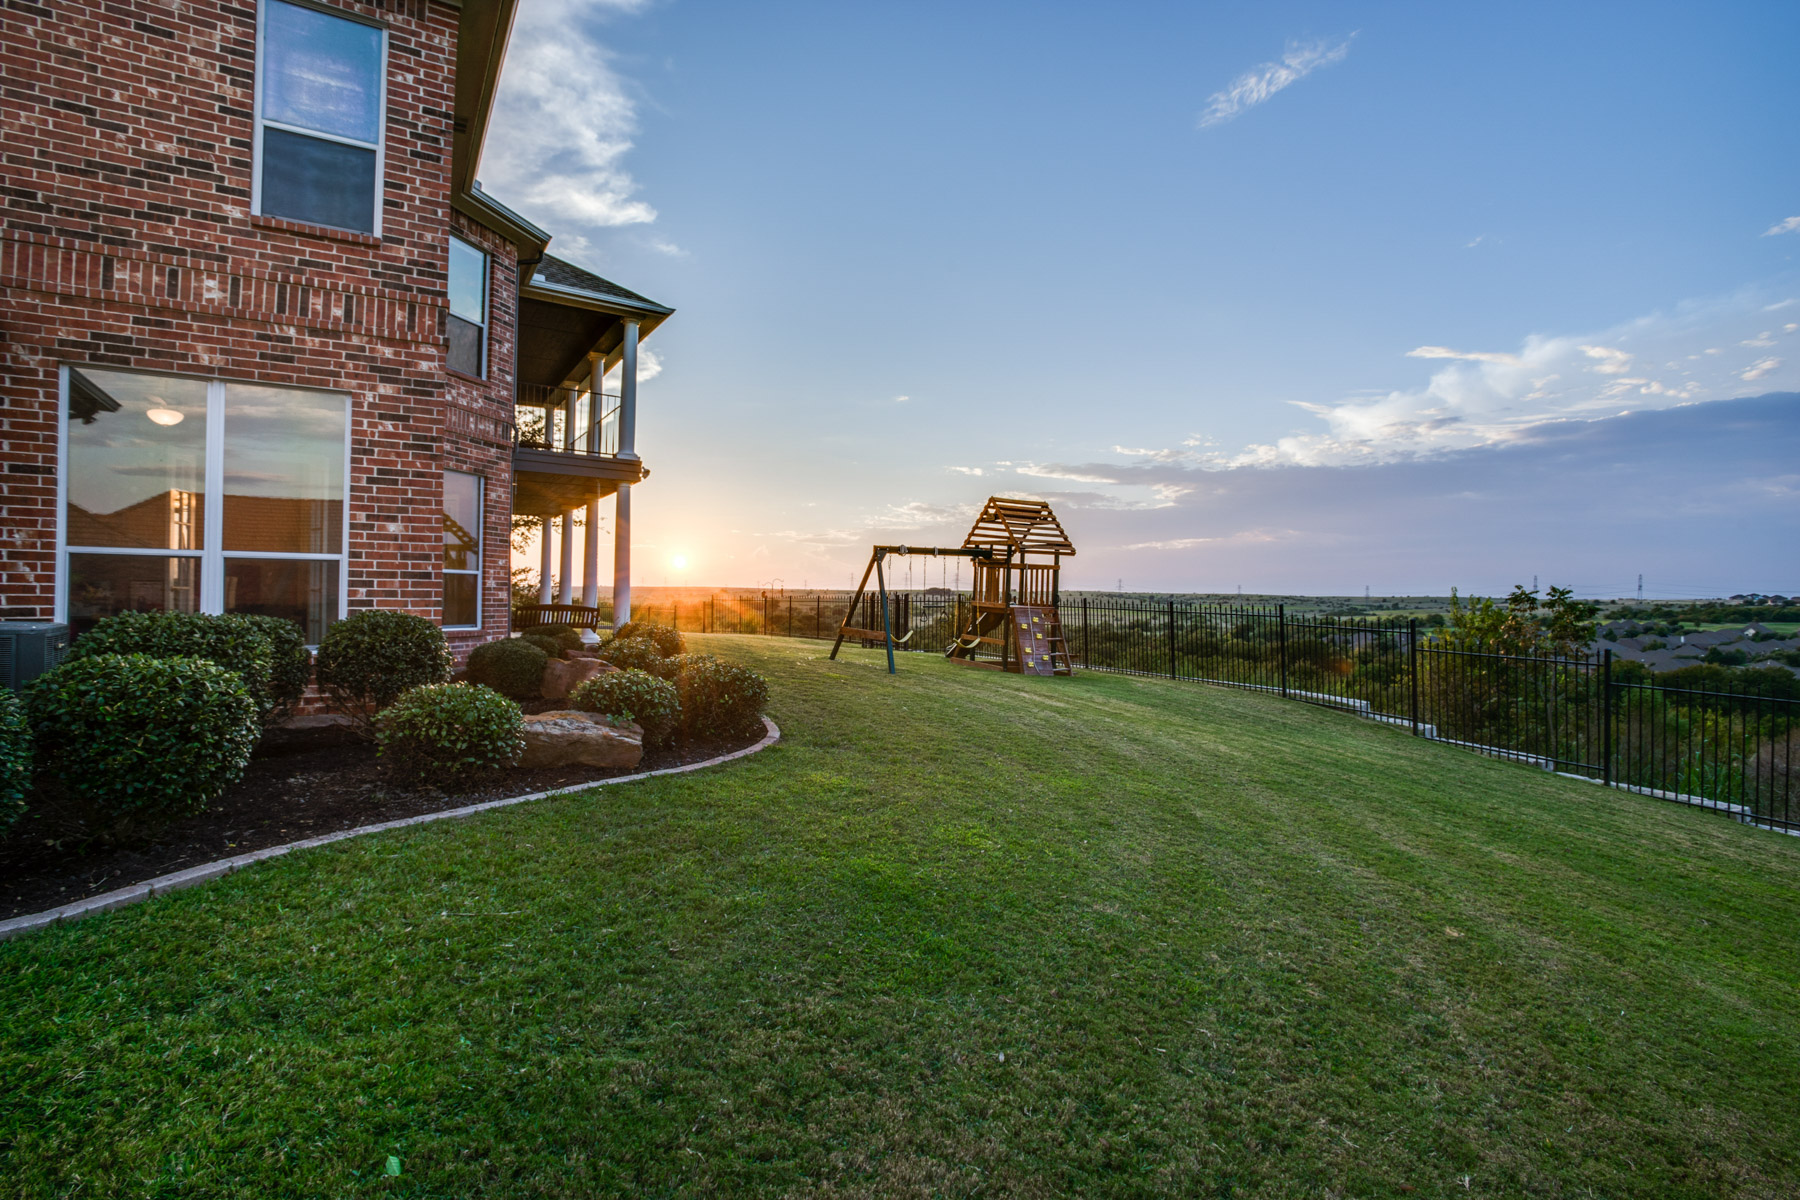 Single Family Home for Sale at Enjoy Breathtaking Sunsets overlooking Whitestone Golf Course 10820 Hawkins Home Blvd. Benbrook, Texas 76126 United States